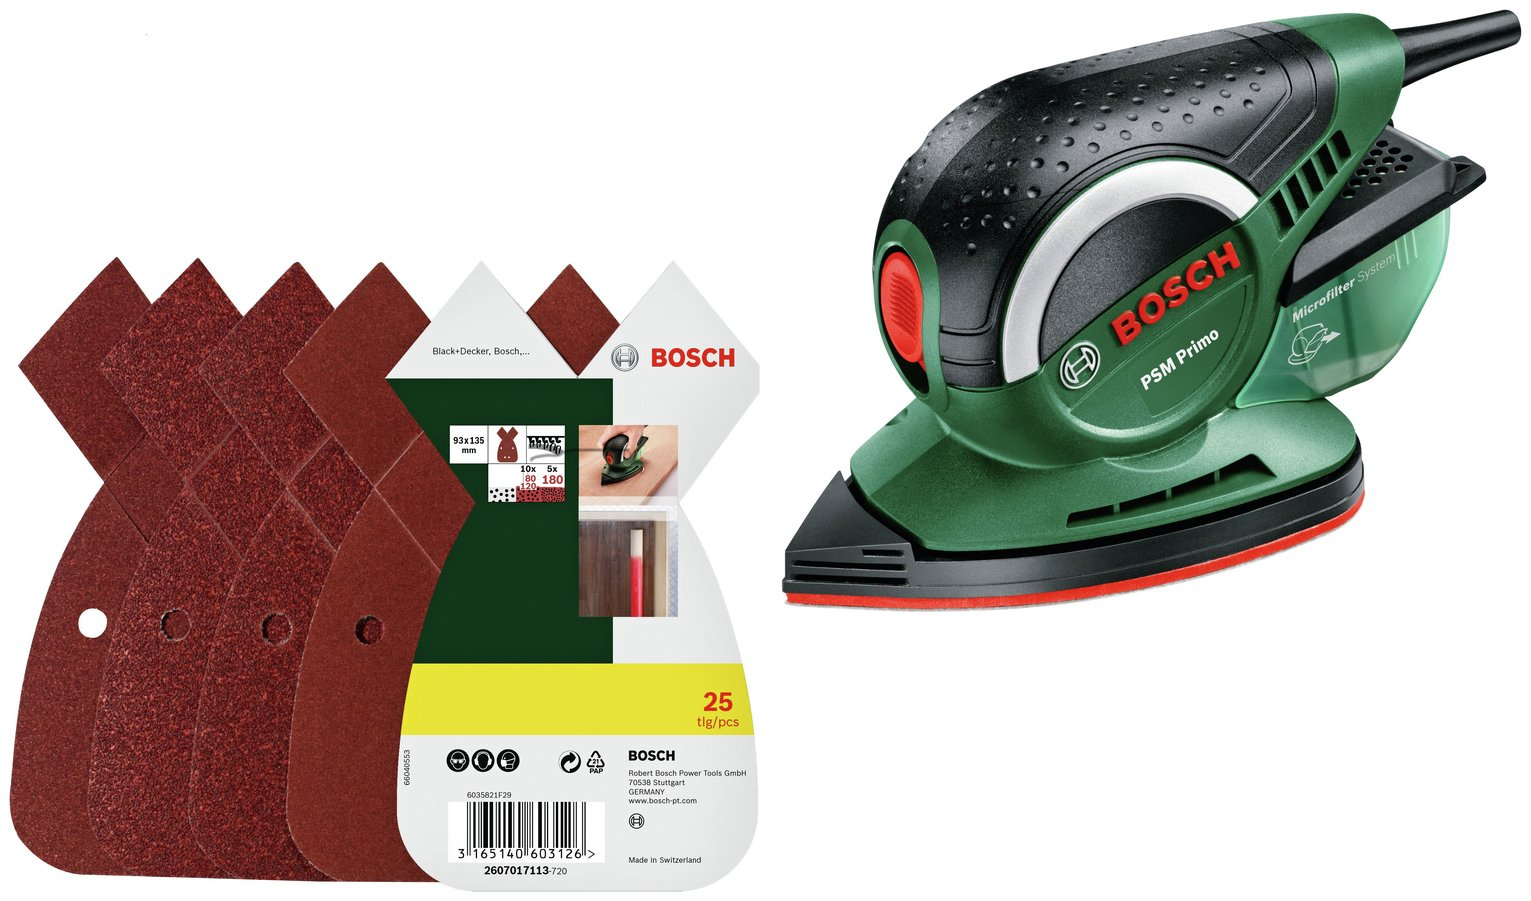 sale on bosch psm primo detail sander with 25 sheets bosch now available our best price on bosch. Black Bedroom Furniture Sets. Home Design Ideas